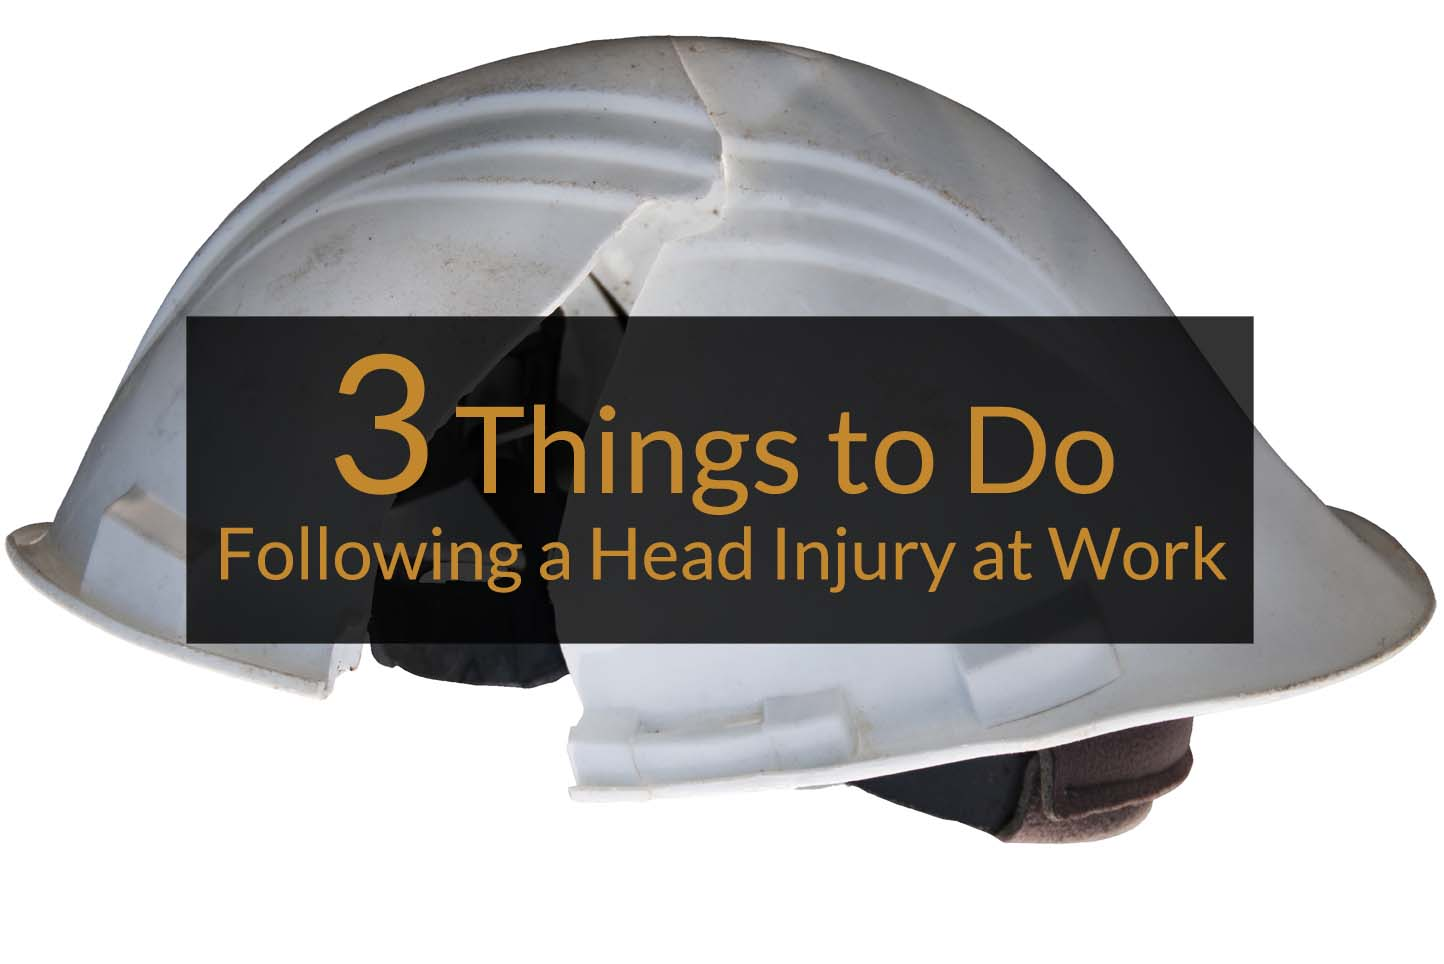 3 things to do following a head injury at work hard hat